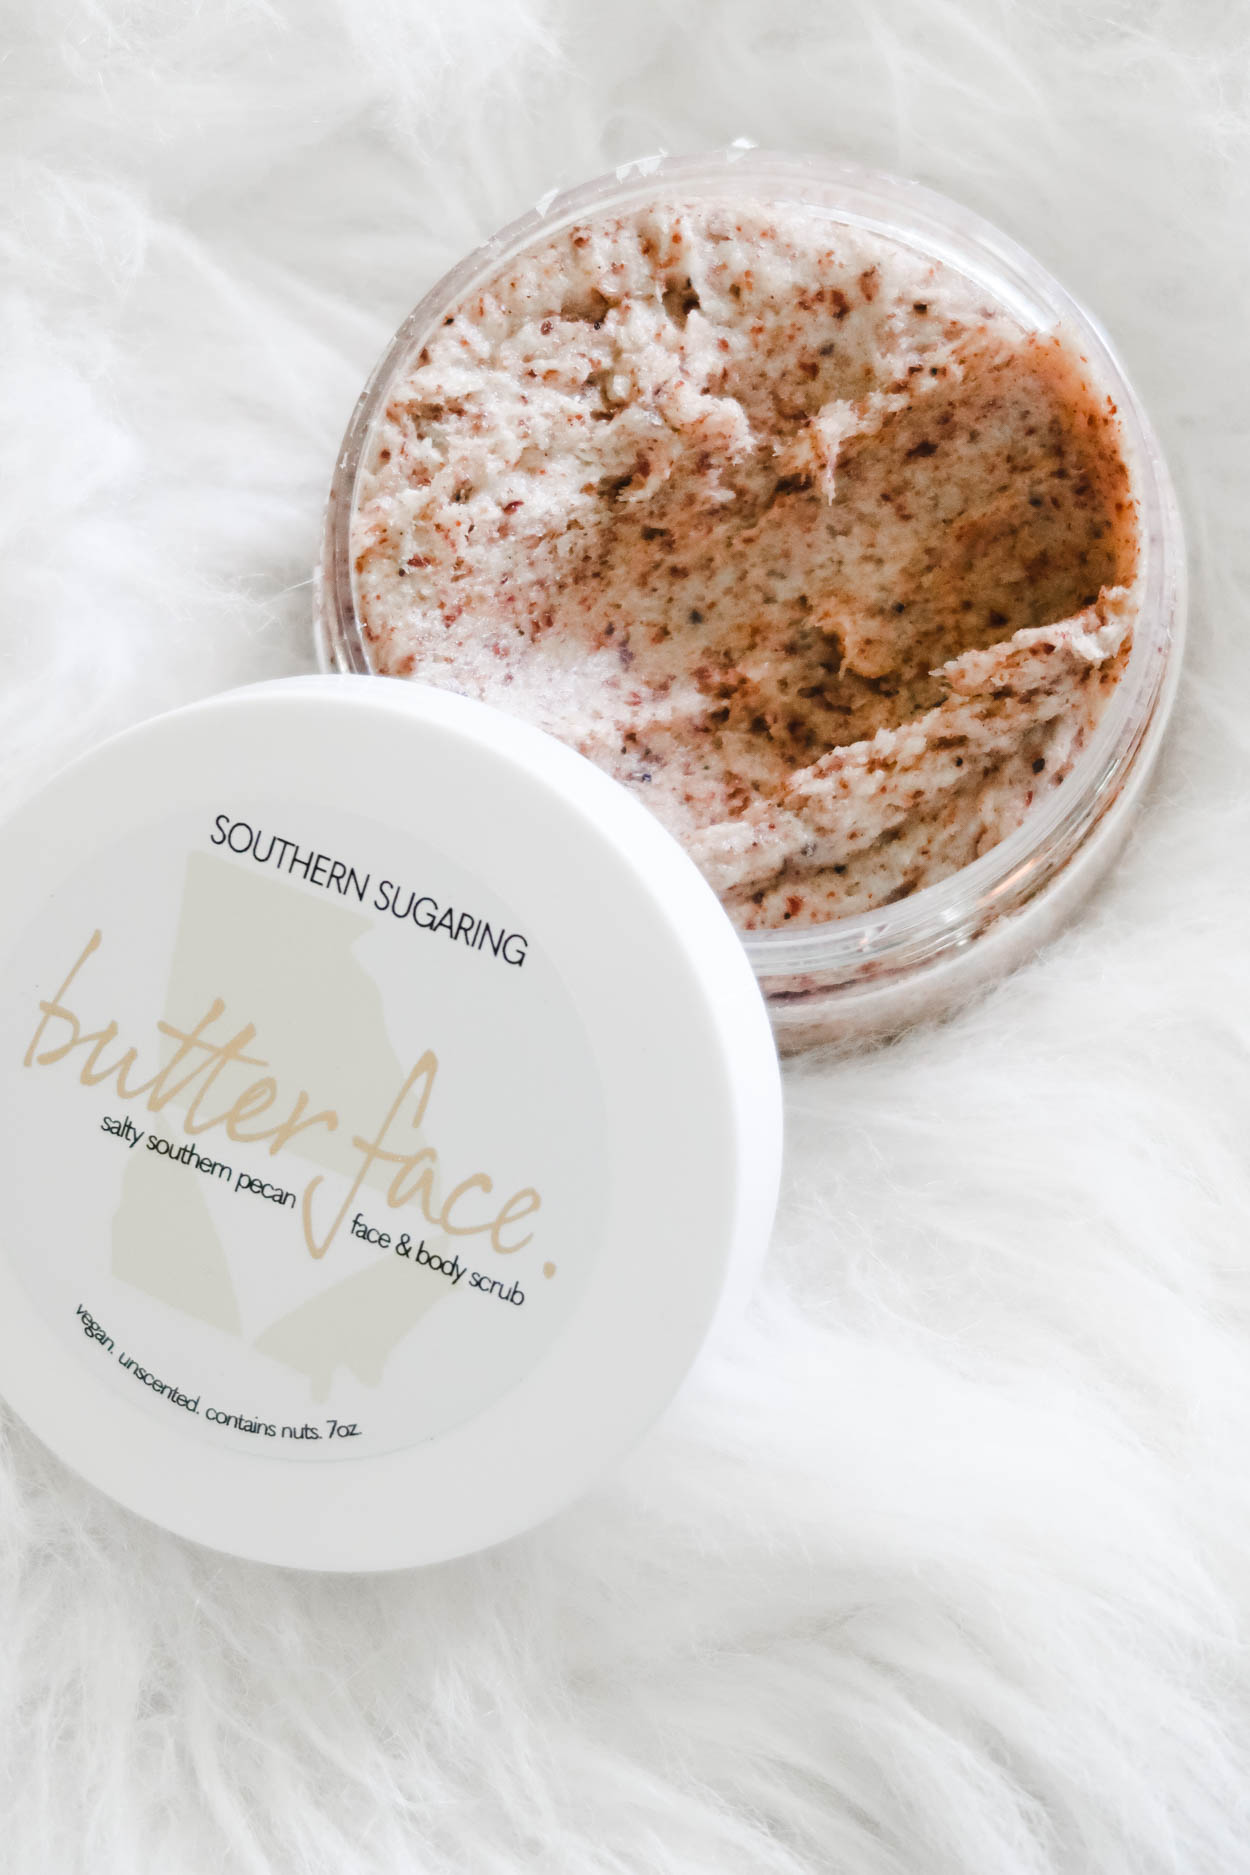 The Southern Sugaring Salty Southern Pecan Face and Body Scrub is a new skincare product being released by, Southern Sugaring, a Sugaring Boutique located in Savannah, GA.